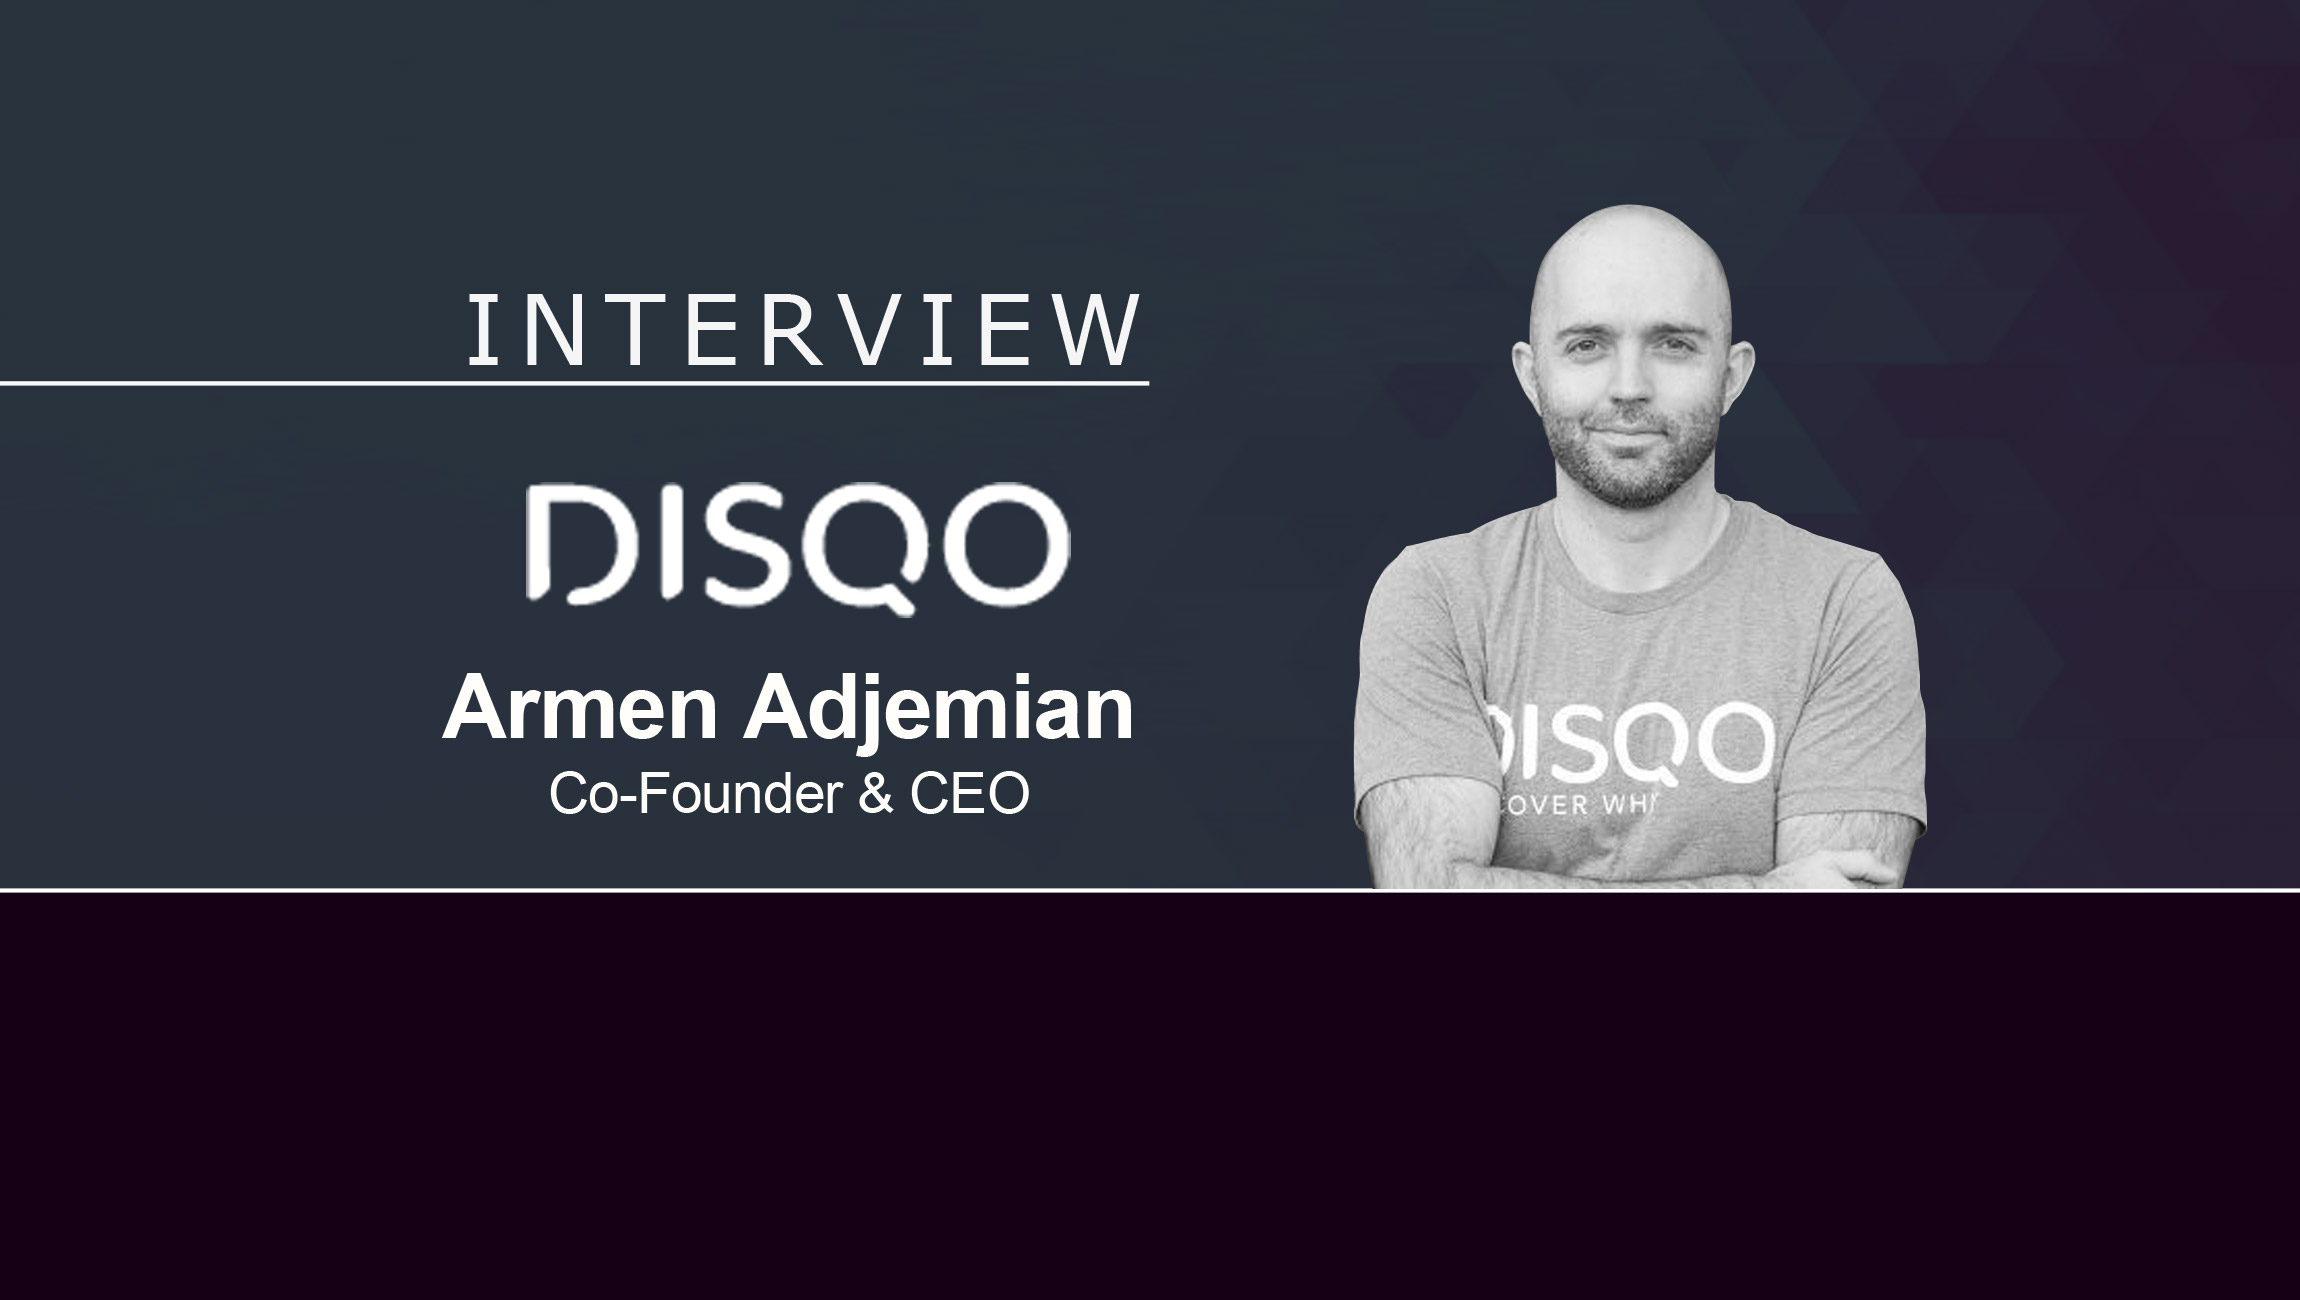 MarTech Interview with Armen Adjemian, Co-Founder and CEO at DISQO